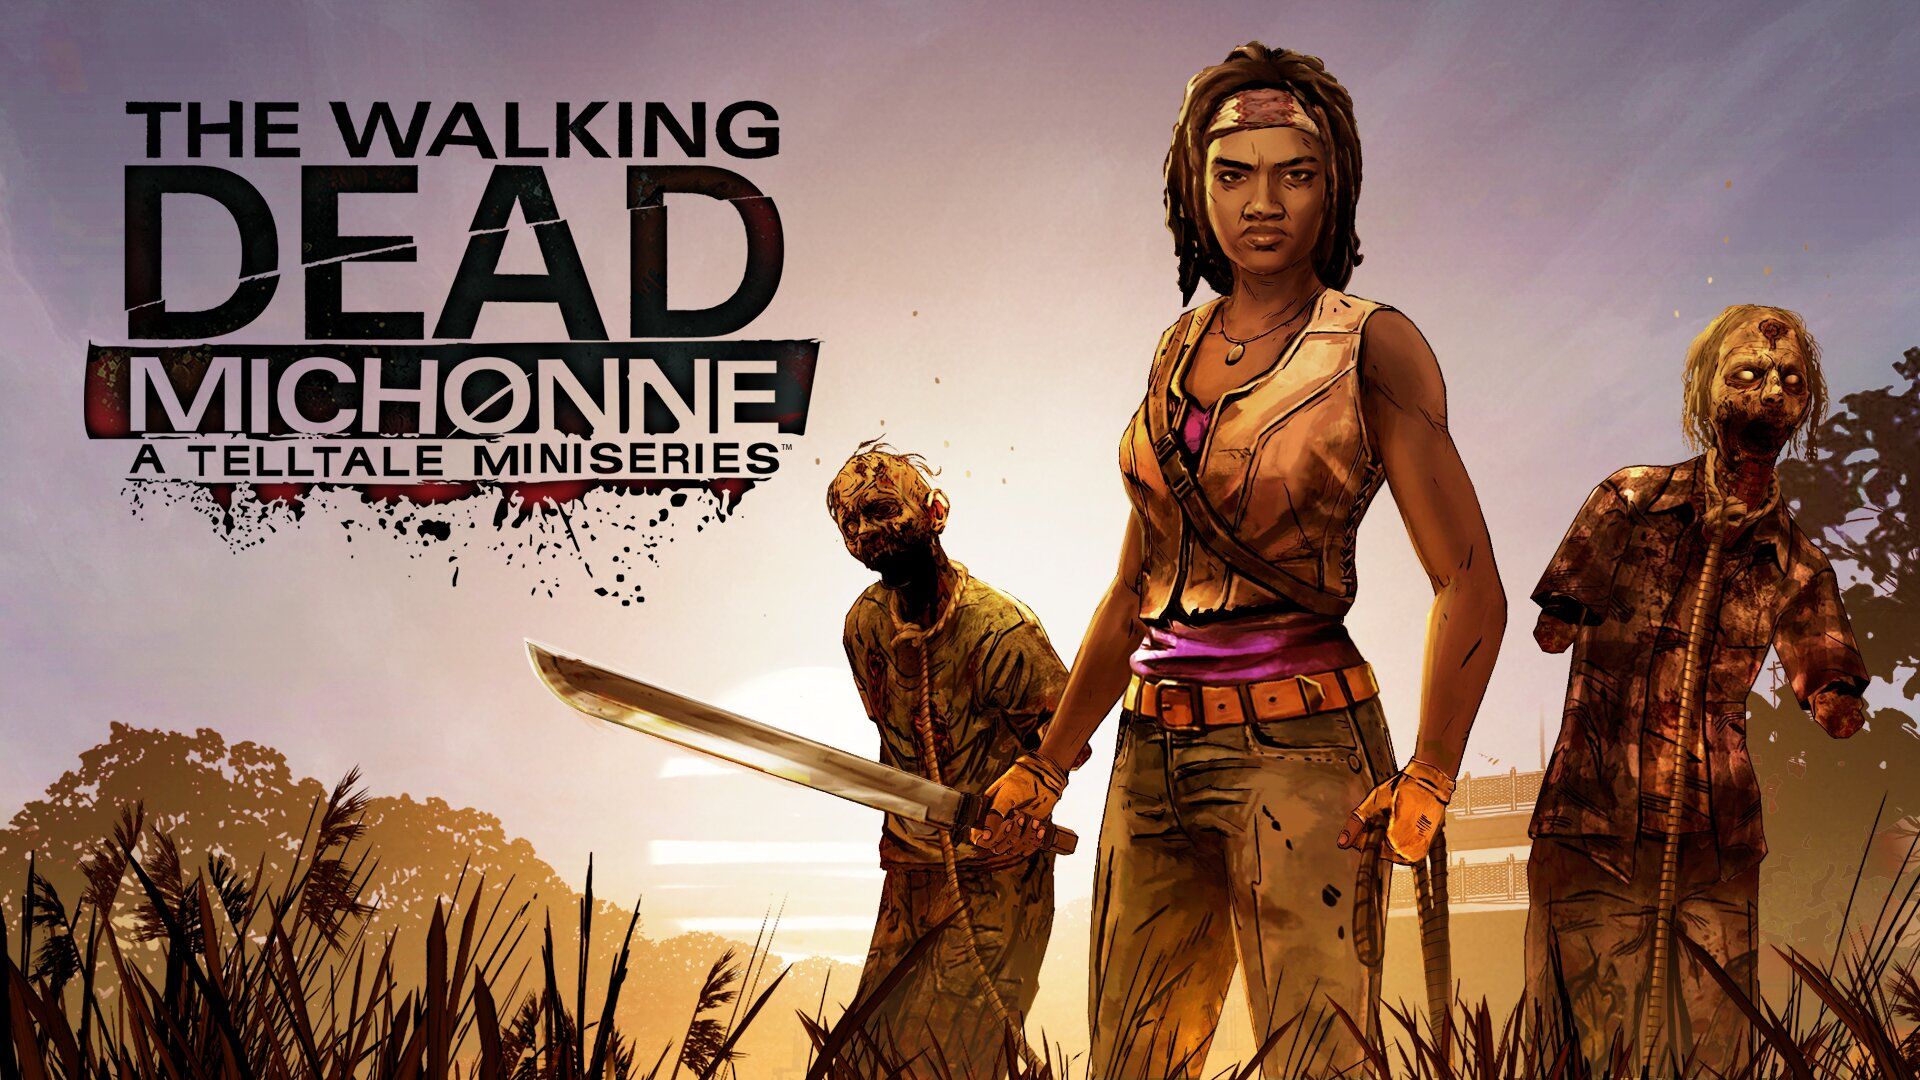 The Walking Dead Michonne Episode 1 Türkçe Yama